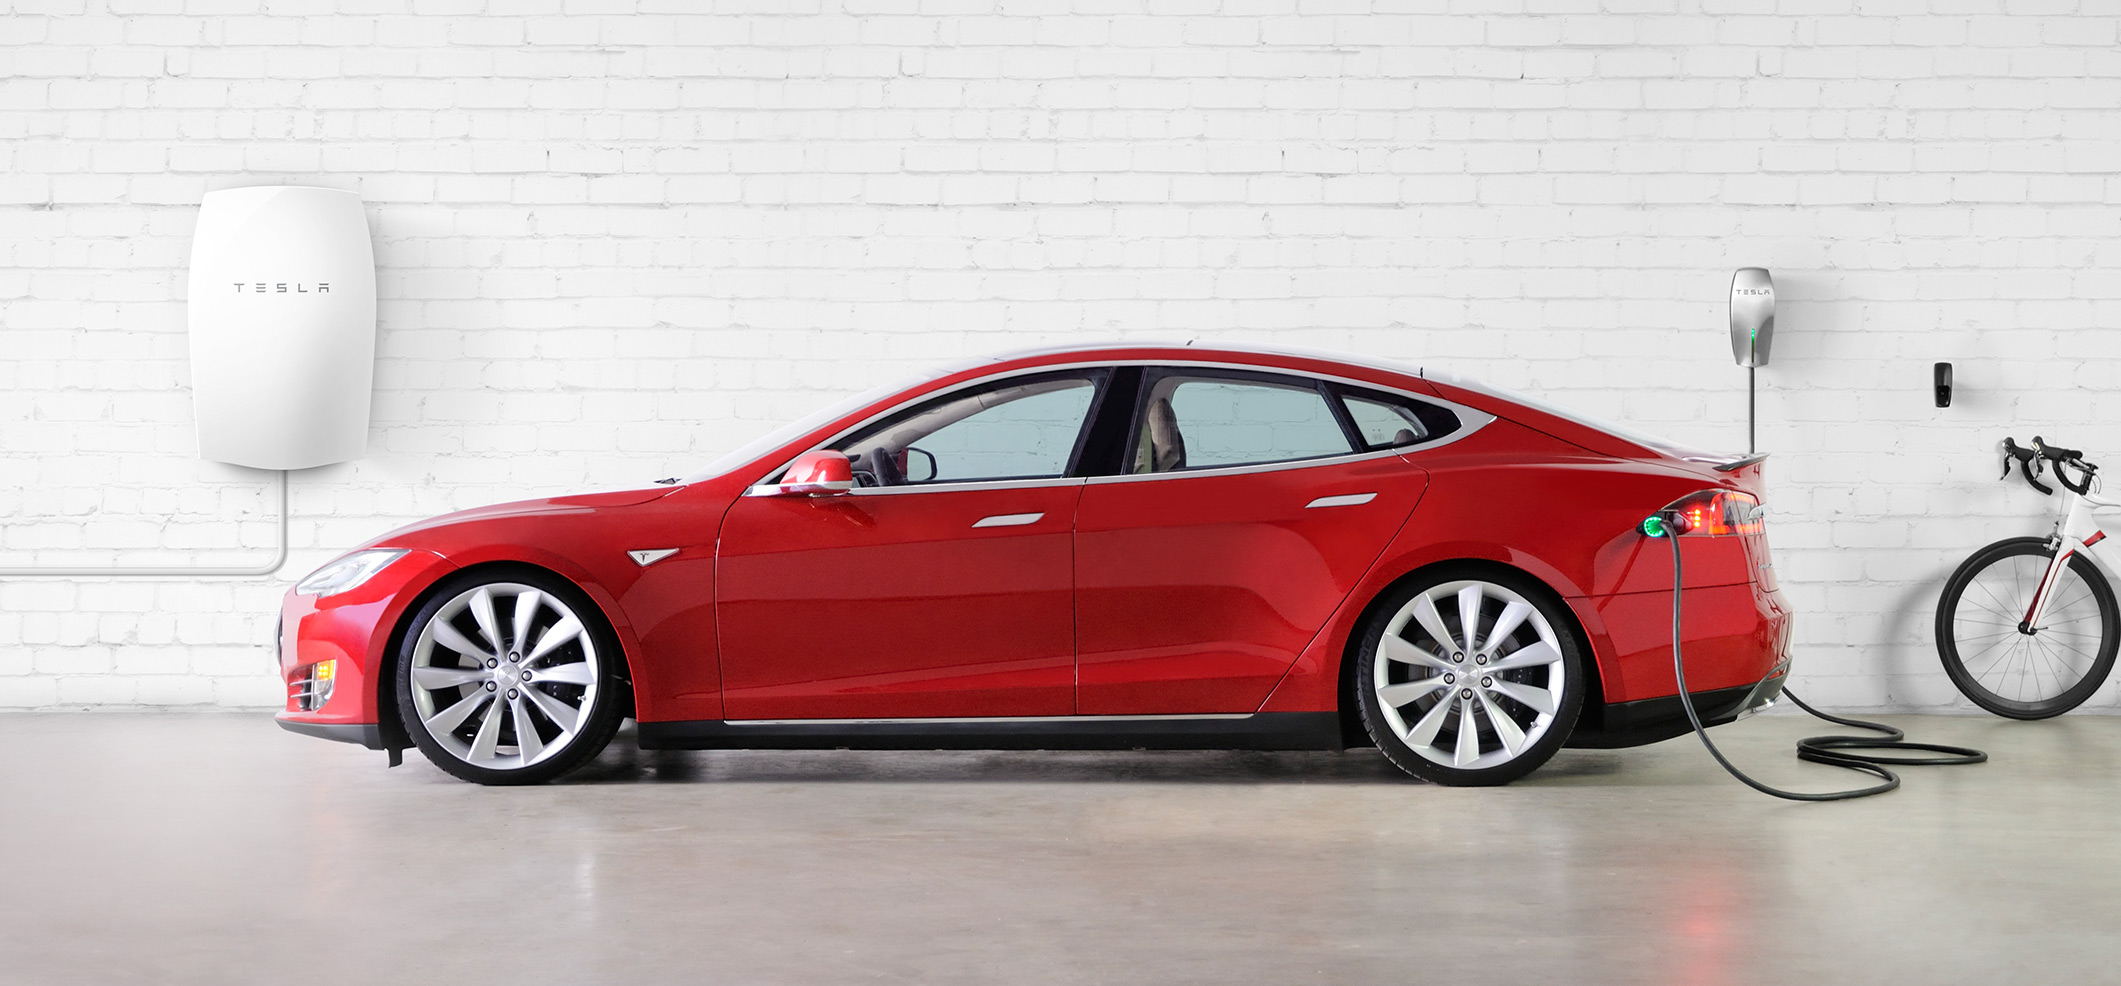 Tesla Motors Model S red  & Tesla Energy Powerwall